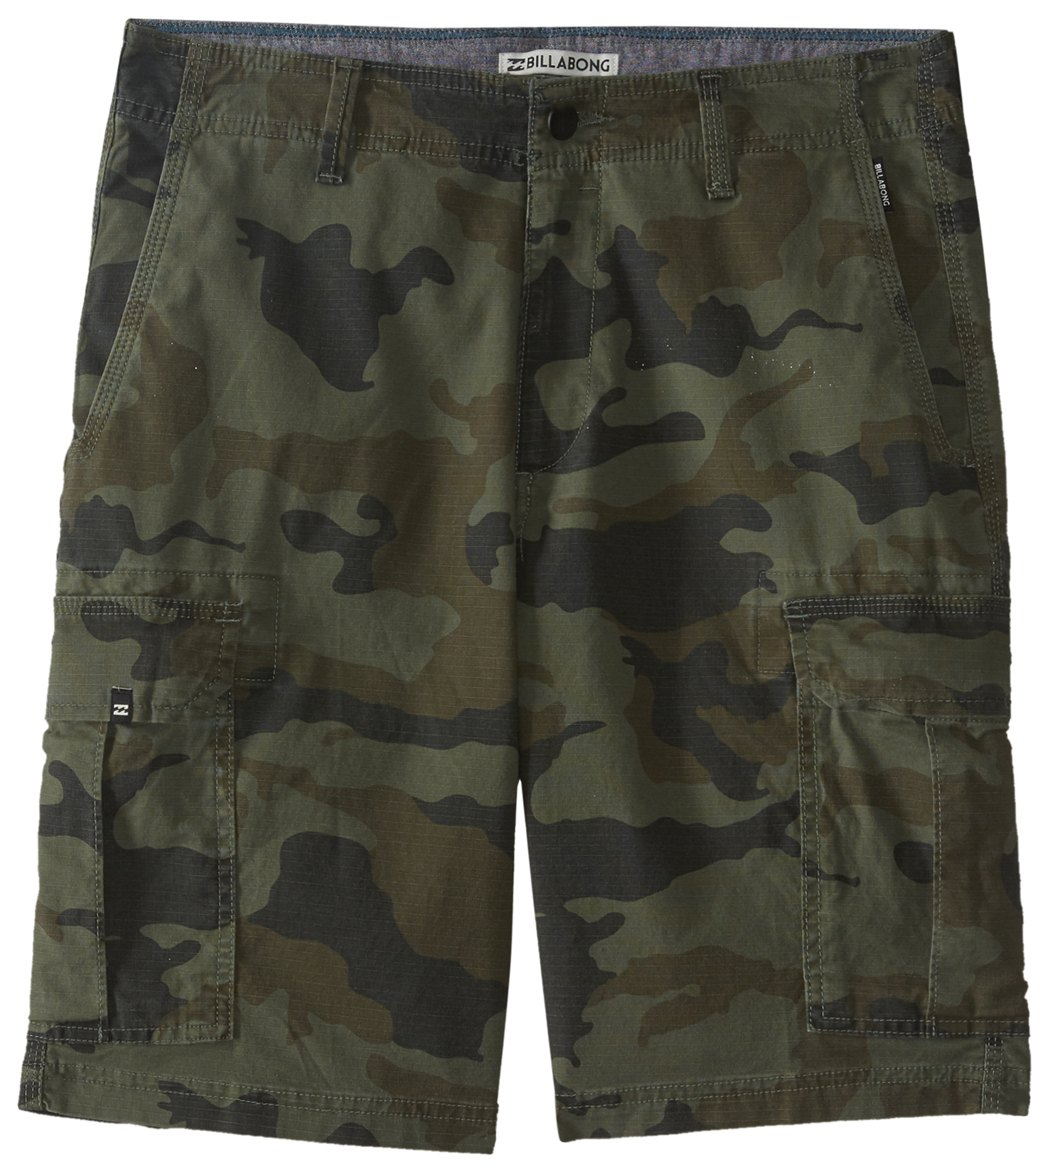 08475ba8e6 Billabong Men's Scheme Walkshort at SwimOutlet.com - Free Shipping